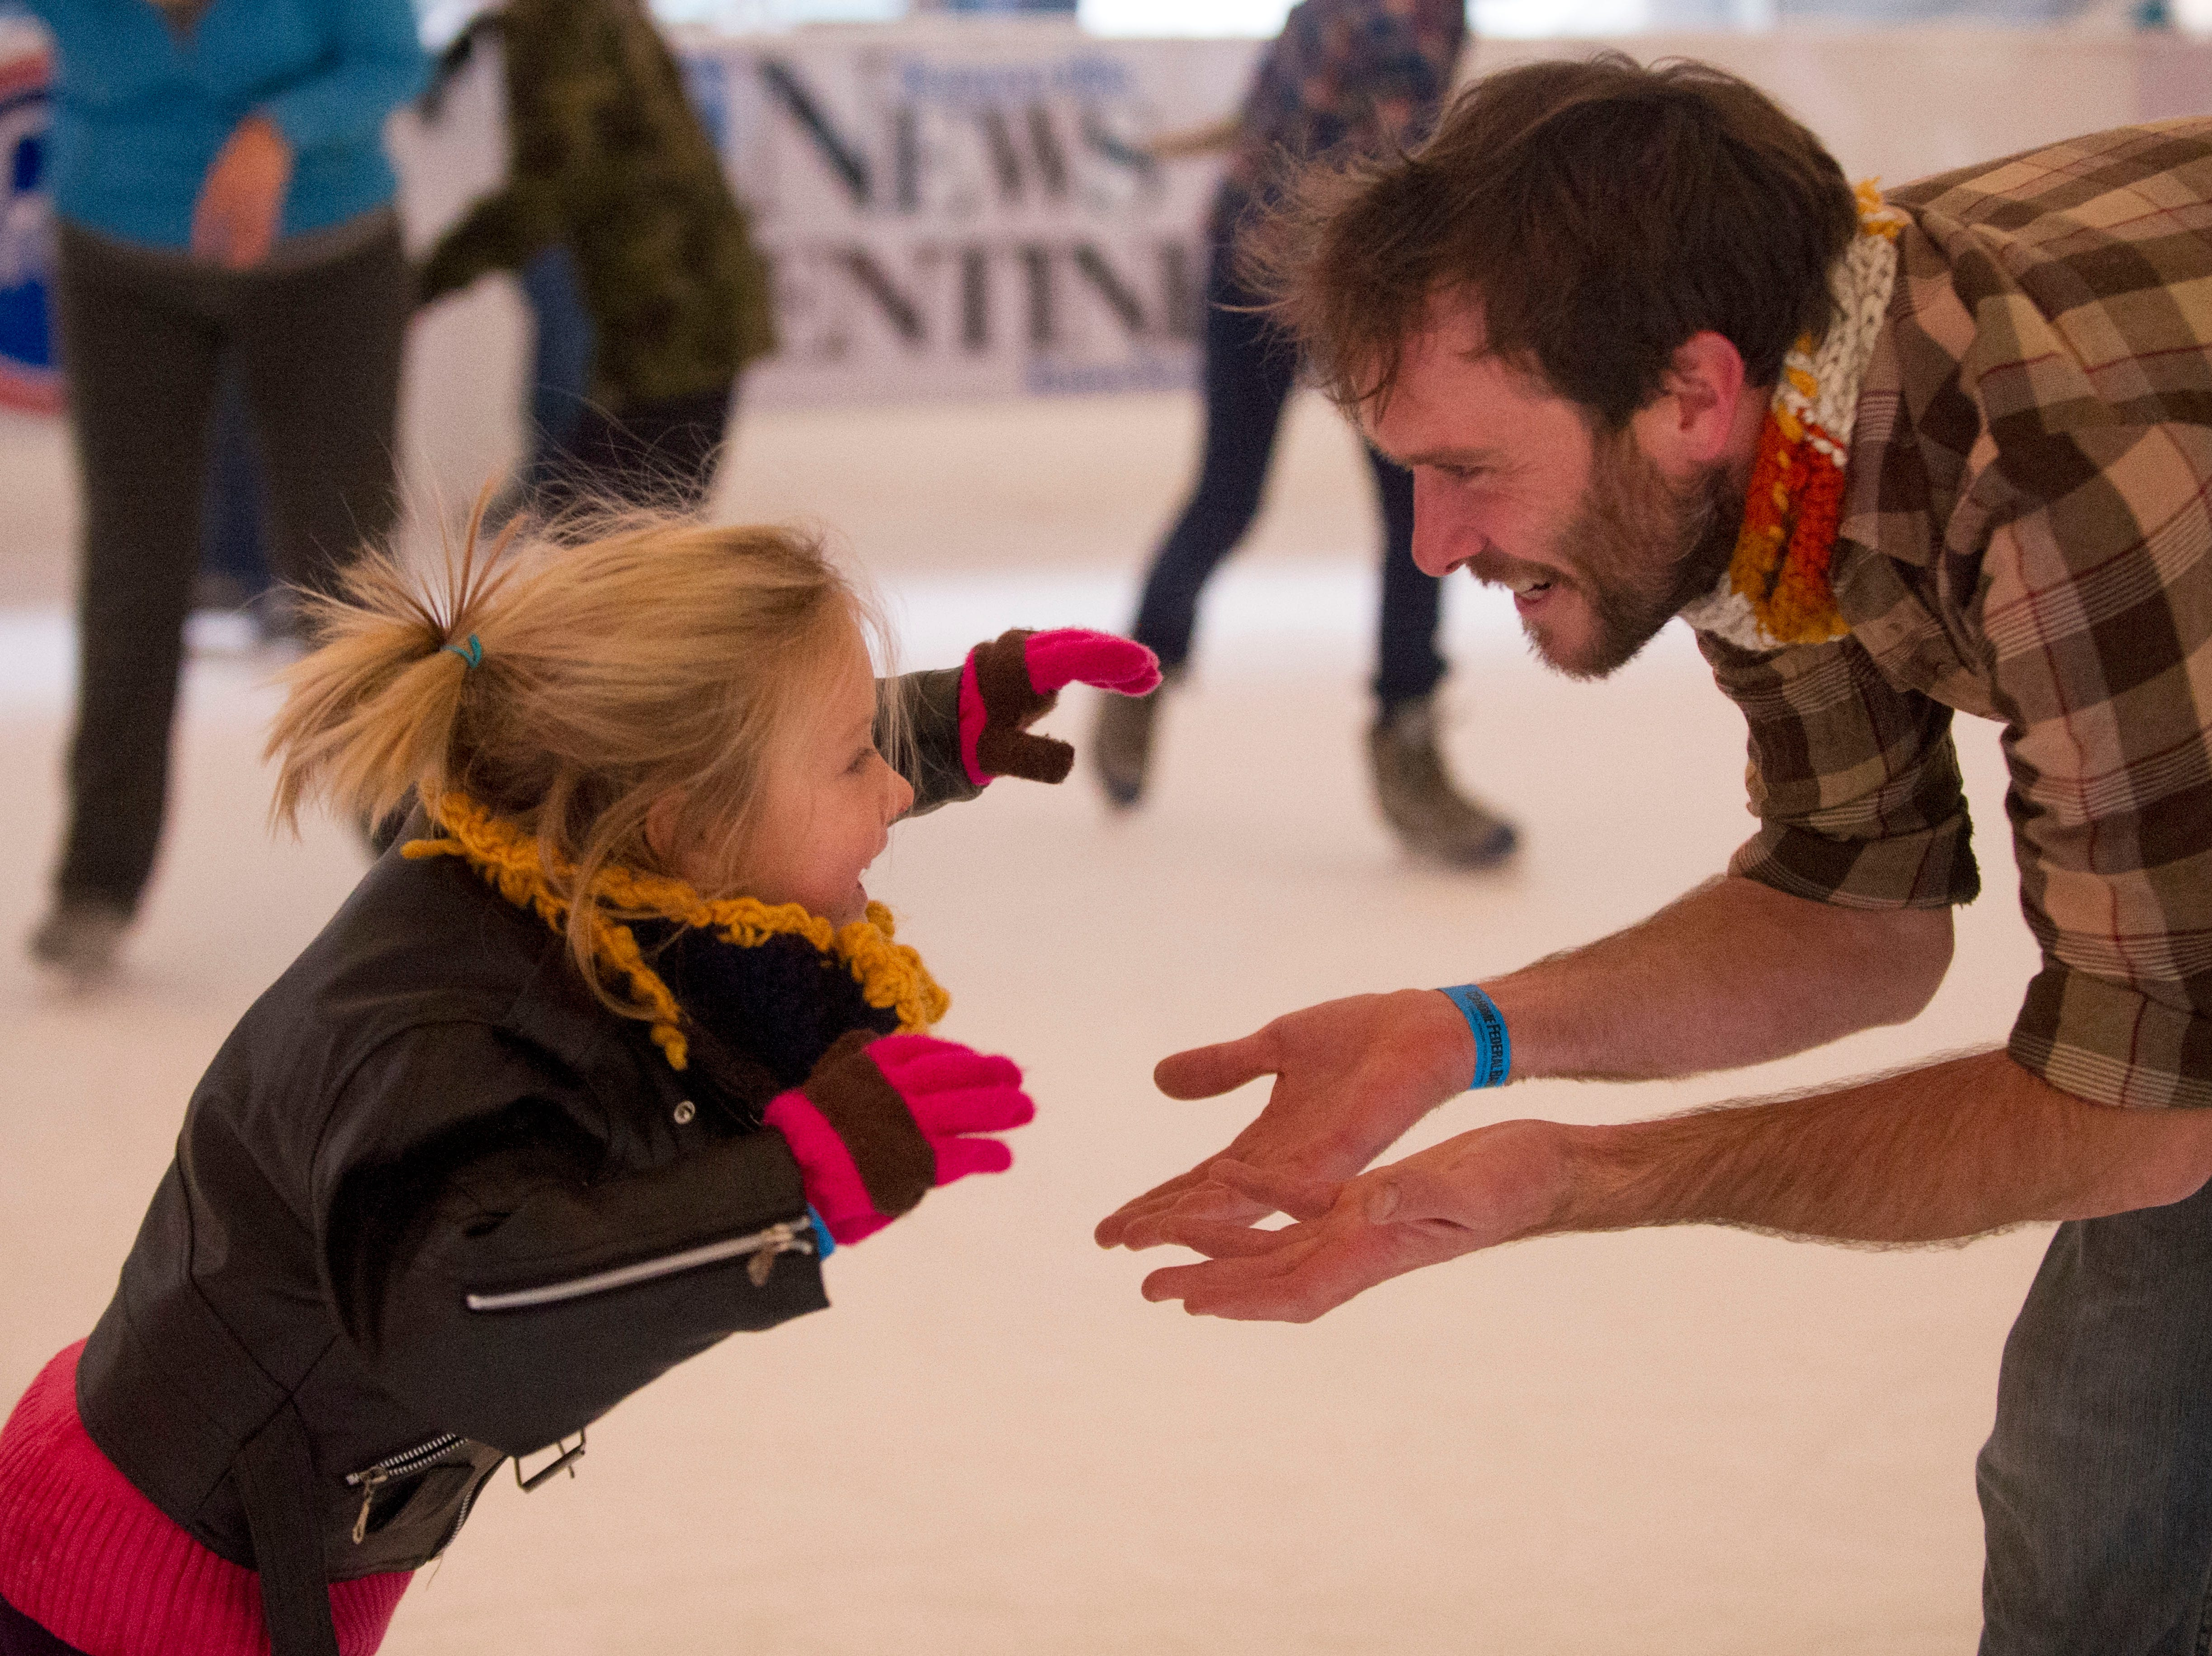 "Violet Epperson-Scott, 5, reaches out to her father Ben Epperson while she learns how to skate at Knoxville's Holidays on Ice on Sunday, December 23, 2012. ""We've specifically came out to ice skate."" Says Epperson of his two daughters. ""This is their first time. They did really well. We fell a little bit."" So far, more than 10,000 people have skated at the ice rink according Holiday on Ice manager Robyn Wilson. ""We're very hopeful that we may have more than 20,000 skaters this year."" She adds."